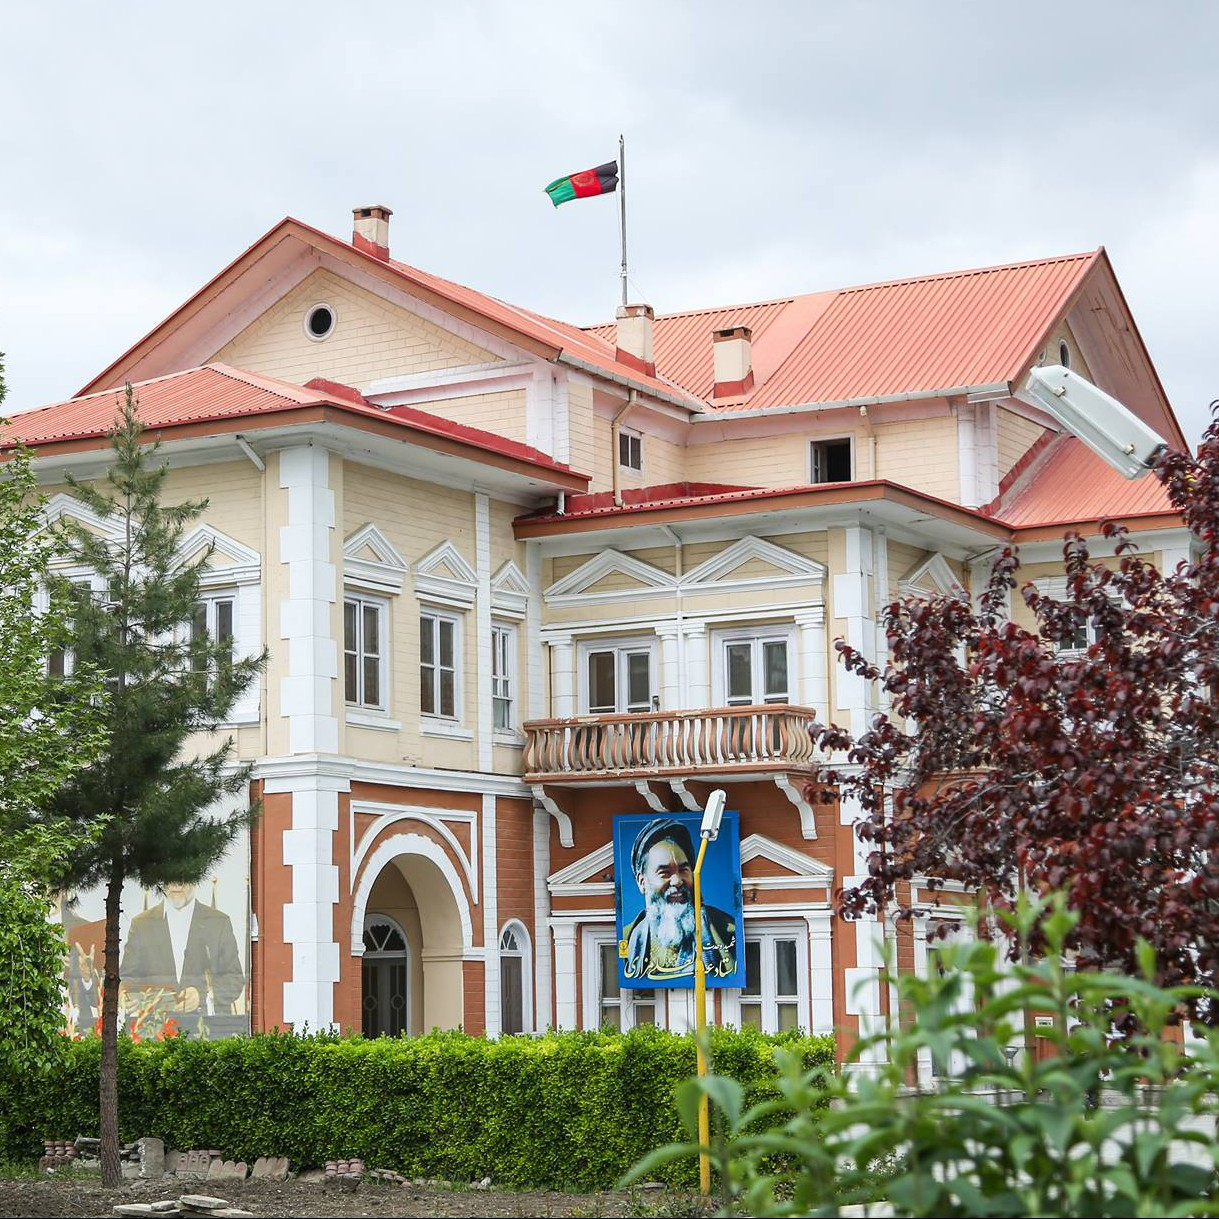 Office of Second Voice President of Islamic republic of Afghanistan